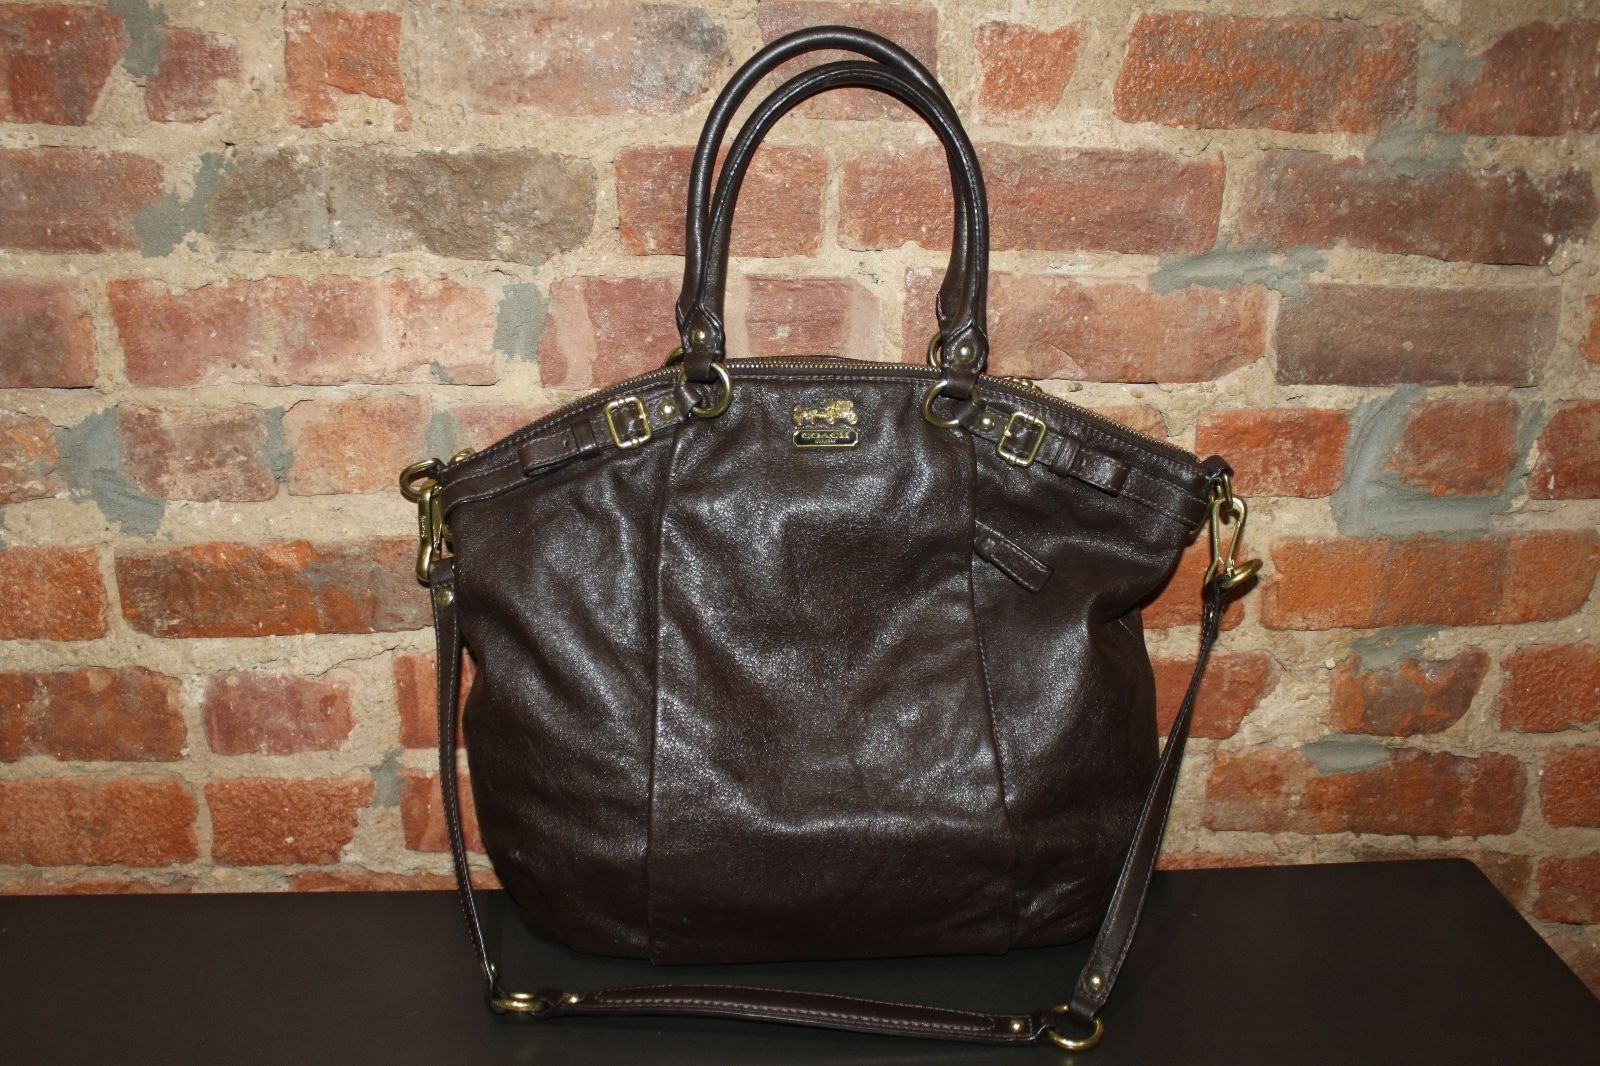 Authentic Coach Madison Lindsey 18641 Brown Leather Satchel Handbag Shoulder Bag https://t.co/ICEXpm9GLH https://t.co/vpESY3AN01